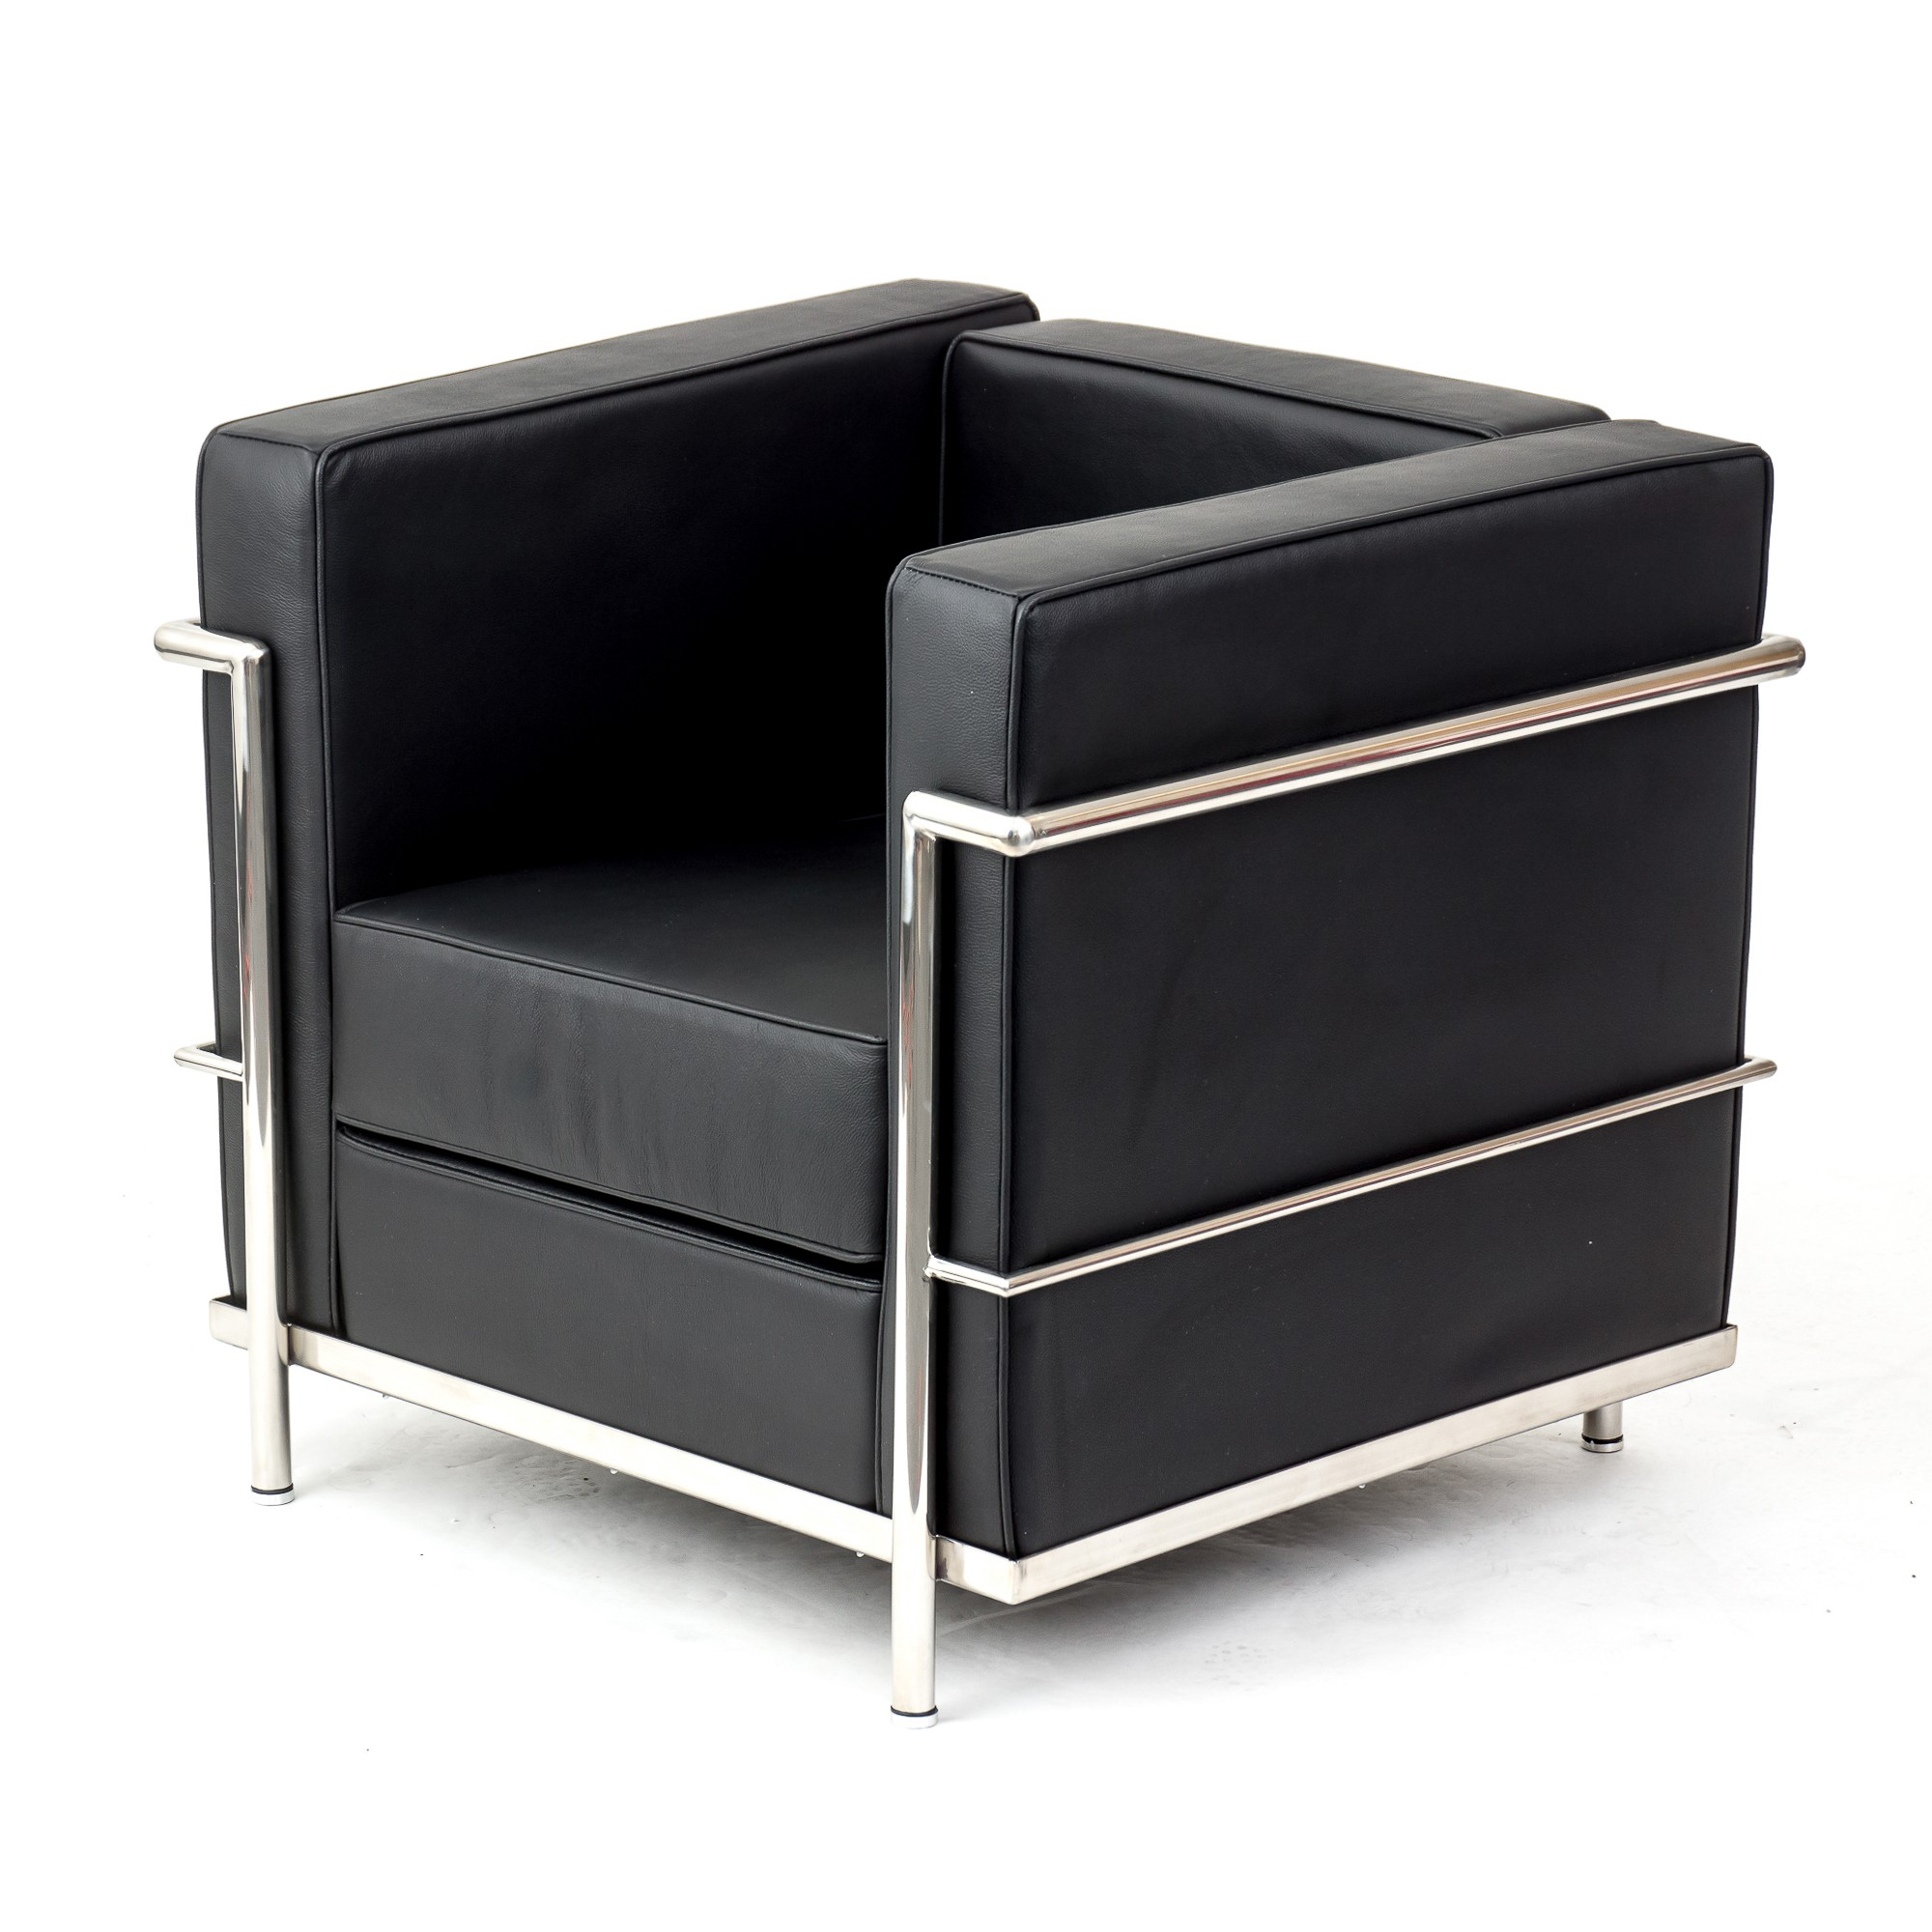 Le corbusier lc2 chair sofa black leather artis d cor for Le corbusier lc2 nachbau